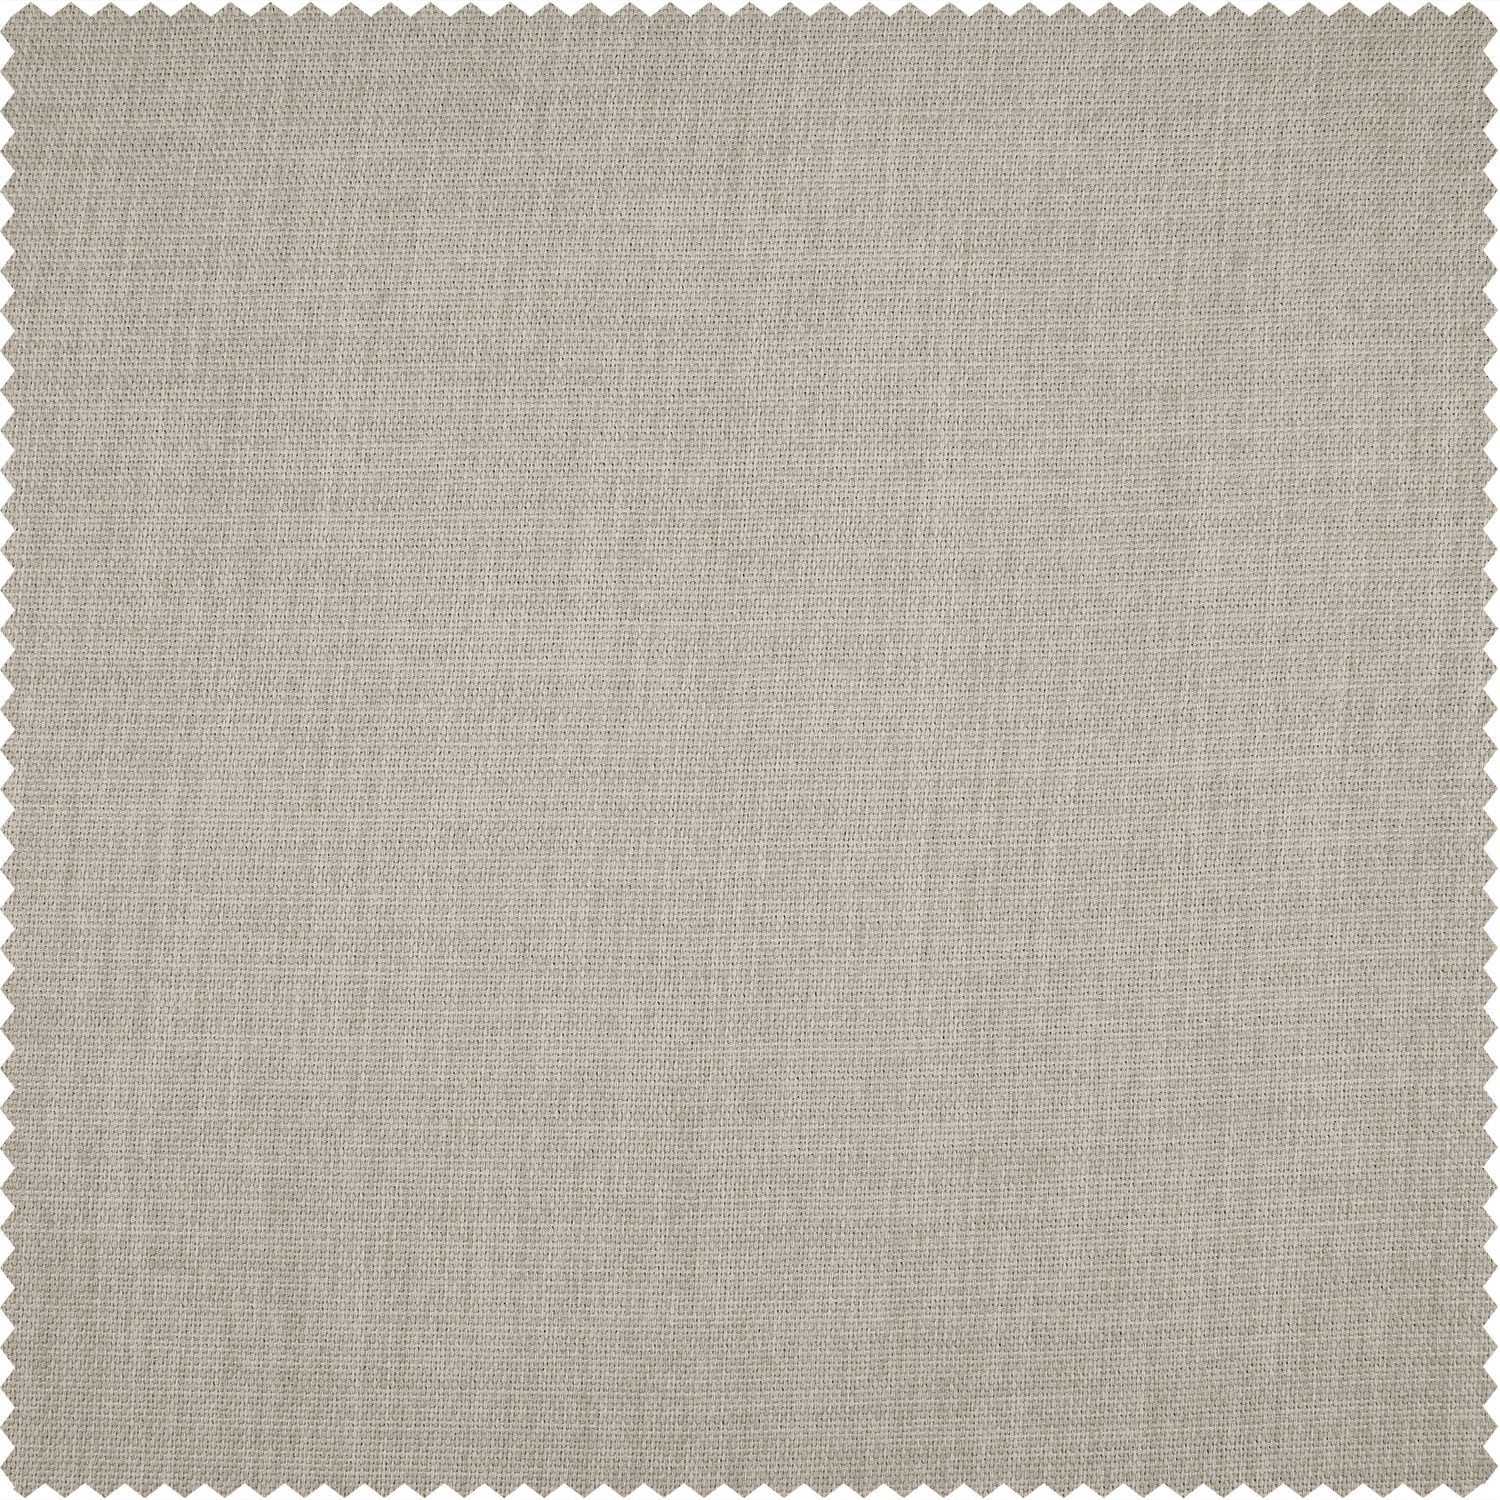 Thatched Tan Faux Linen Blackout Room Darkening Swatch